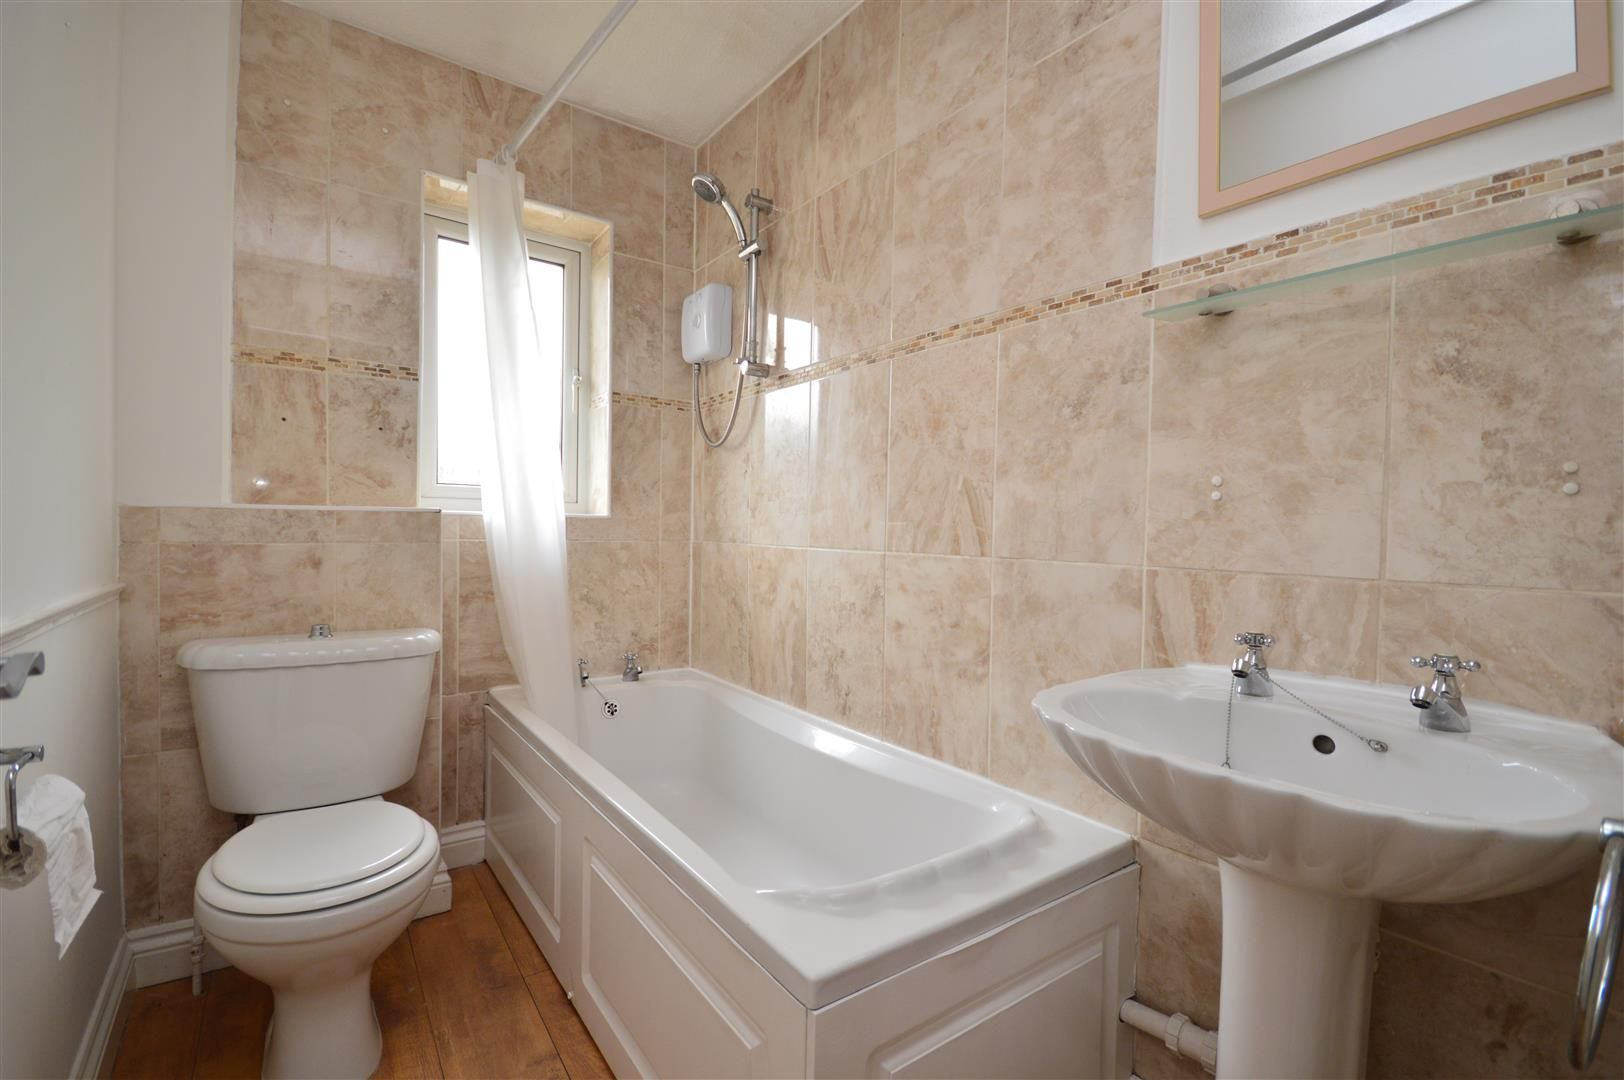 2 bed end-of-terrace for sale in Belmont 8